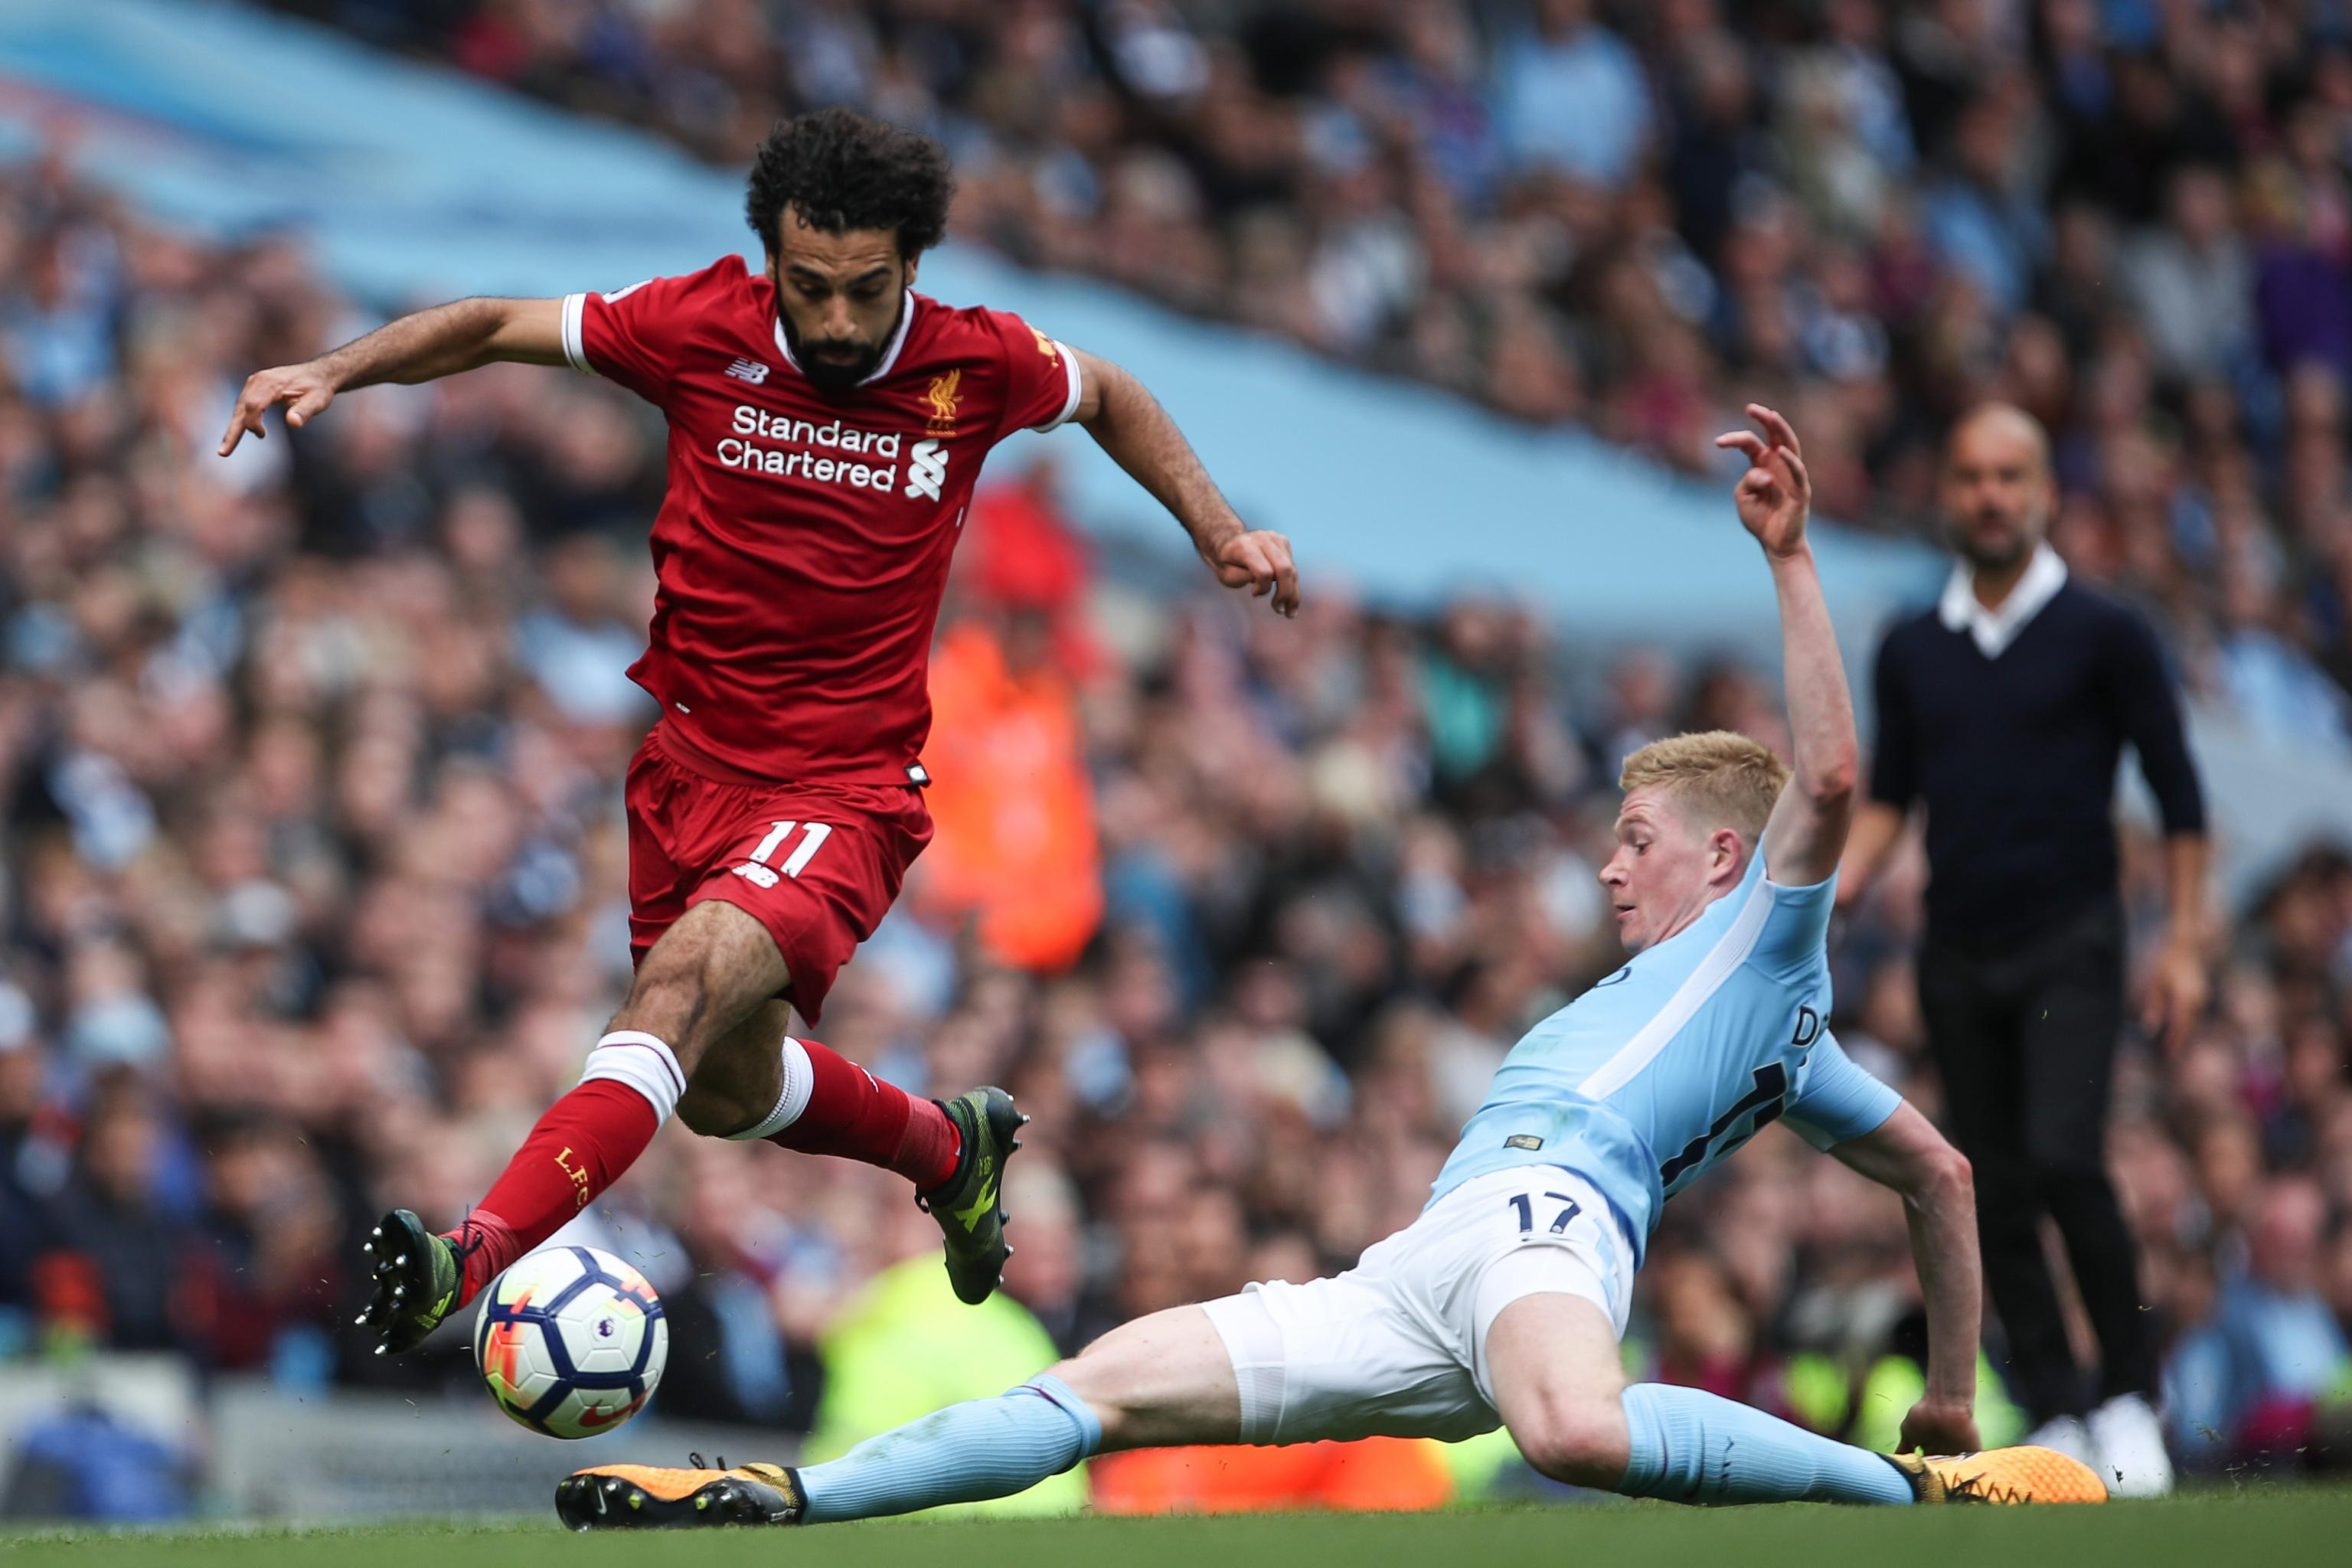 Pfa Awards 2018 Player Of The Year Young Player Of The Year Nominees Revealed Bleacher Report Latest News Videos And Highlights